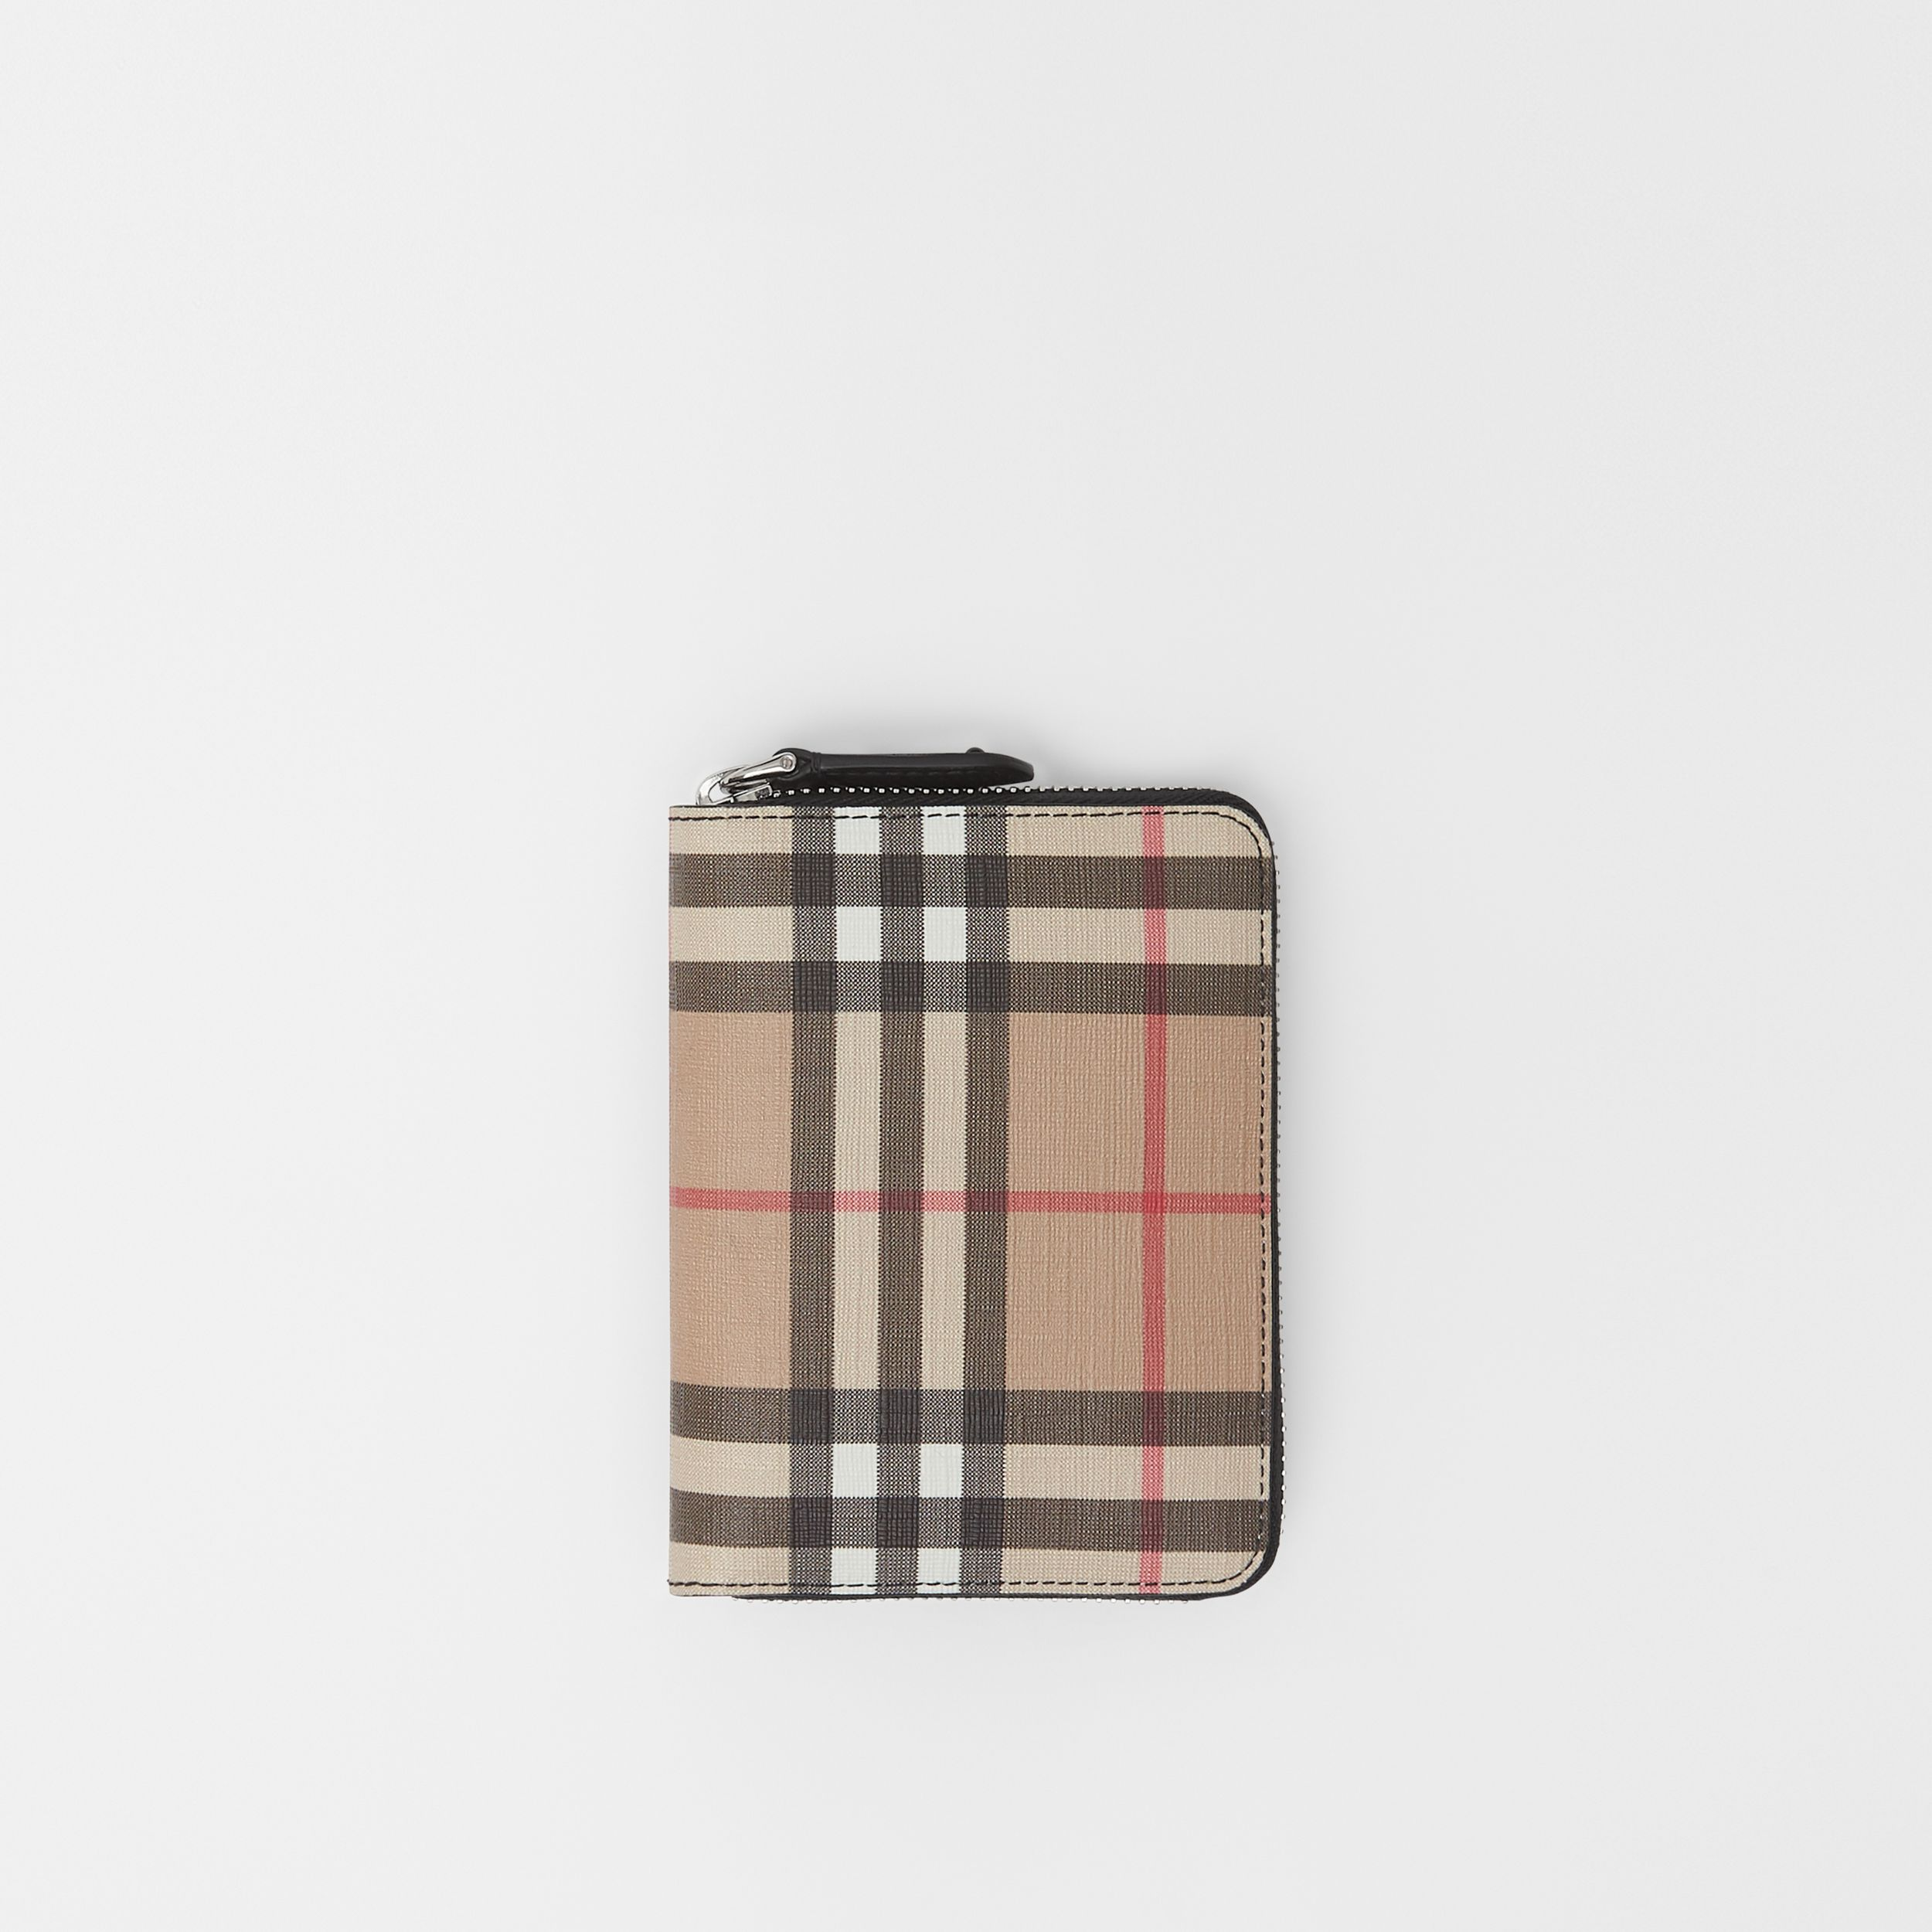 Vintage Check E-canvas Ziparound Wallet in Black - Women | Burberry - 1